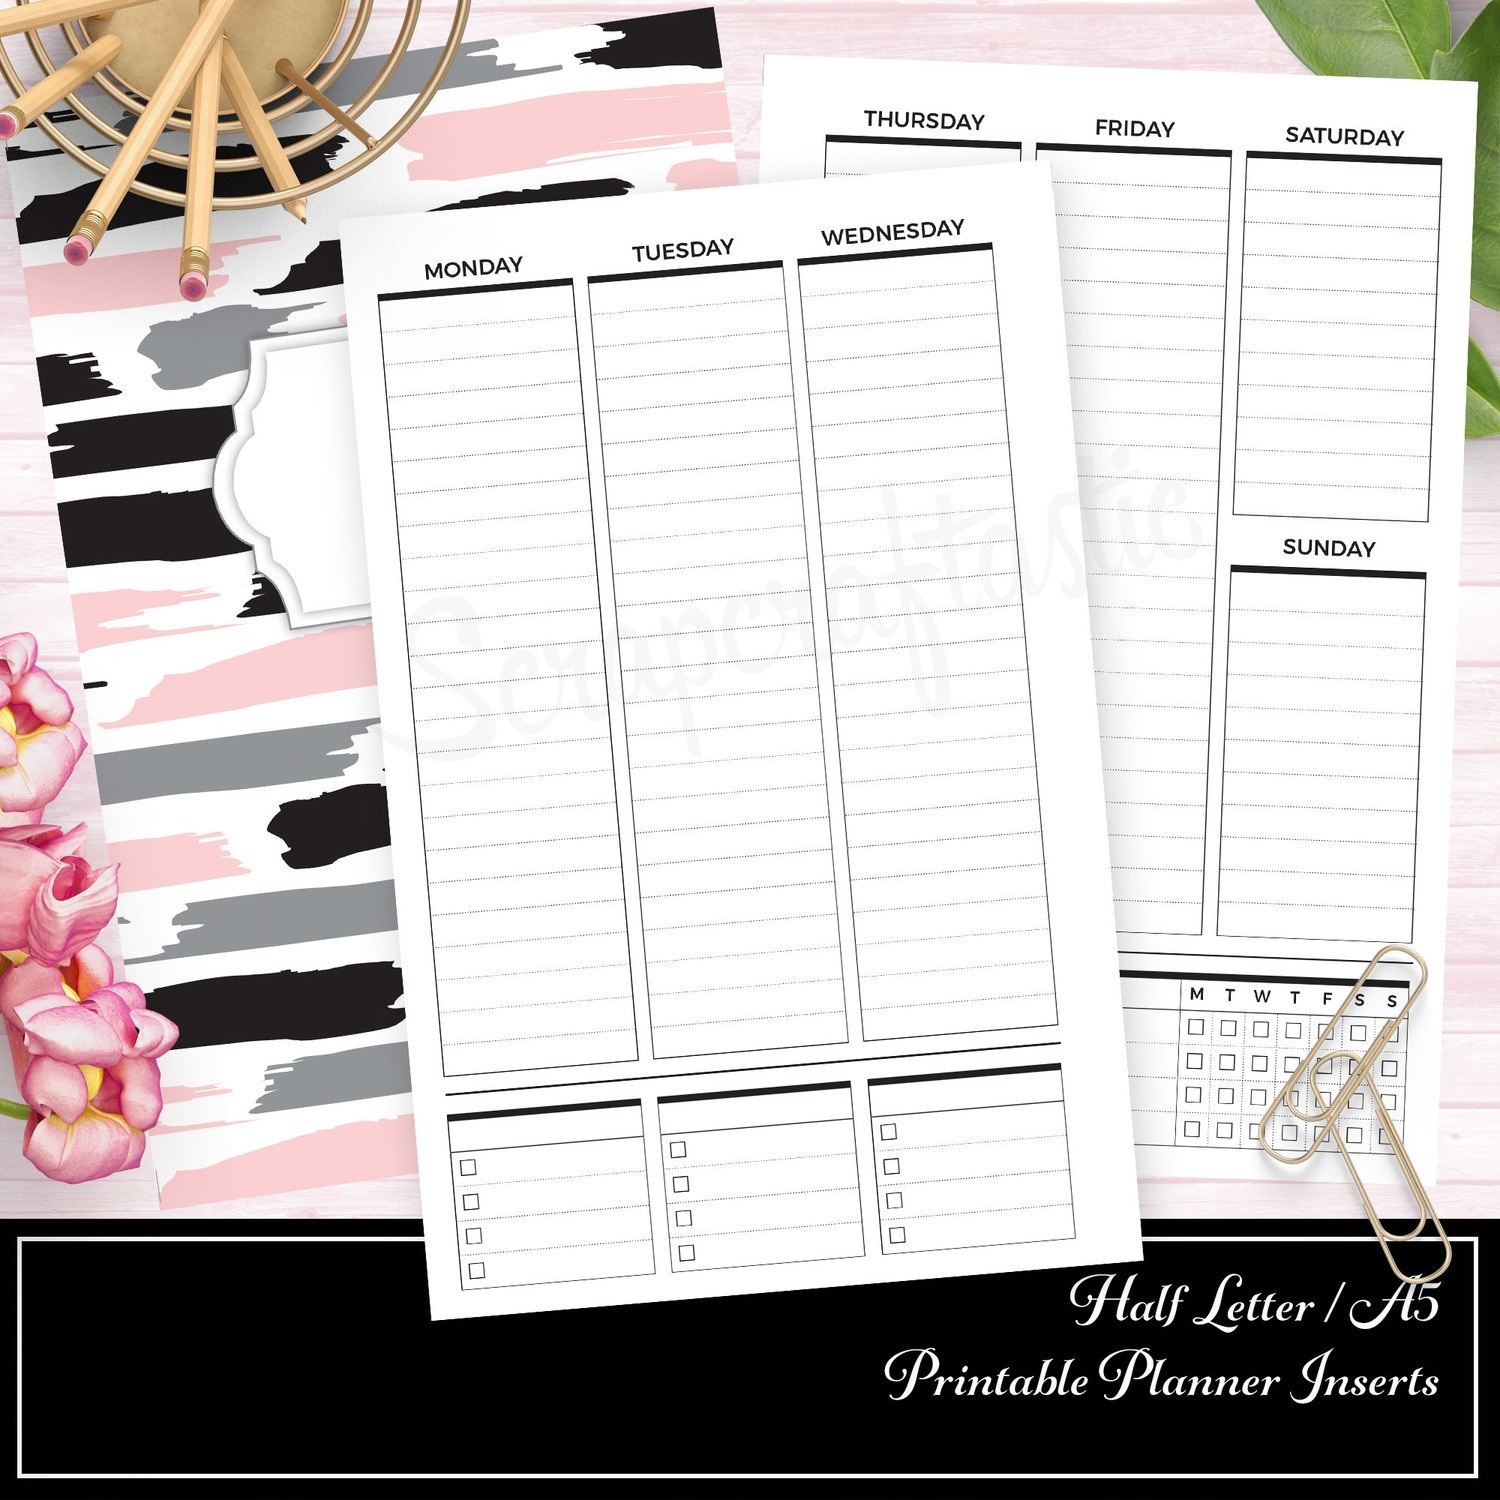 HALF LETTER A5 - Vertical Lined Undated Weekly Printable Planner Insert